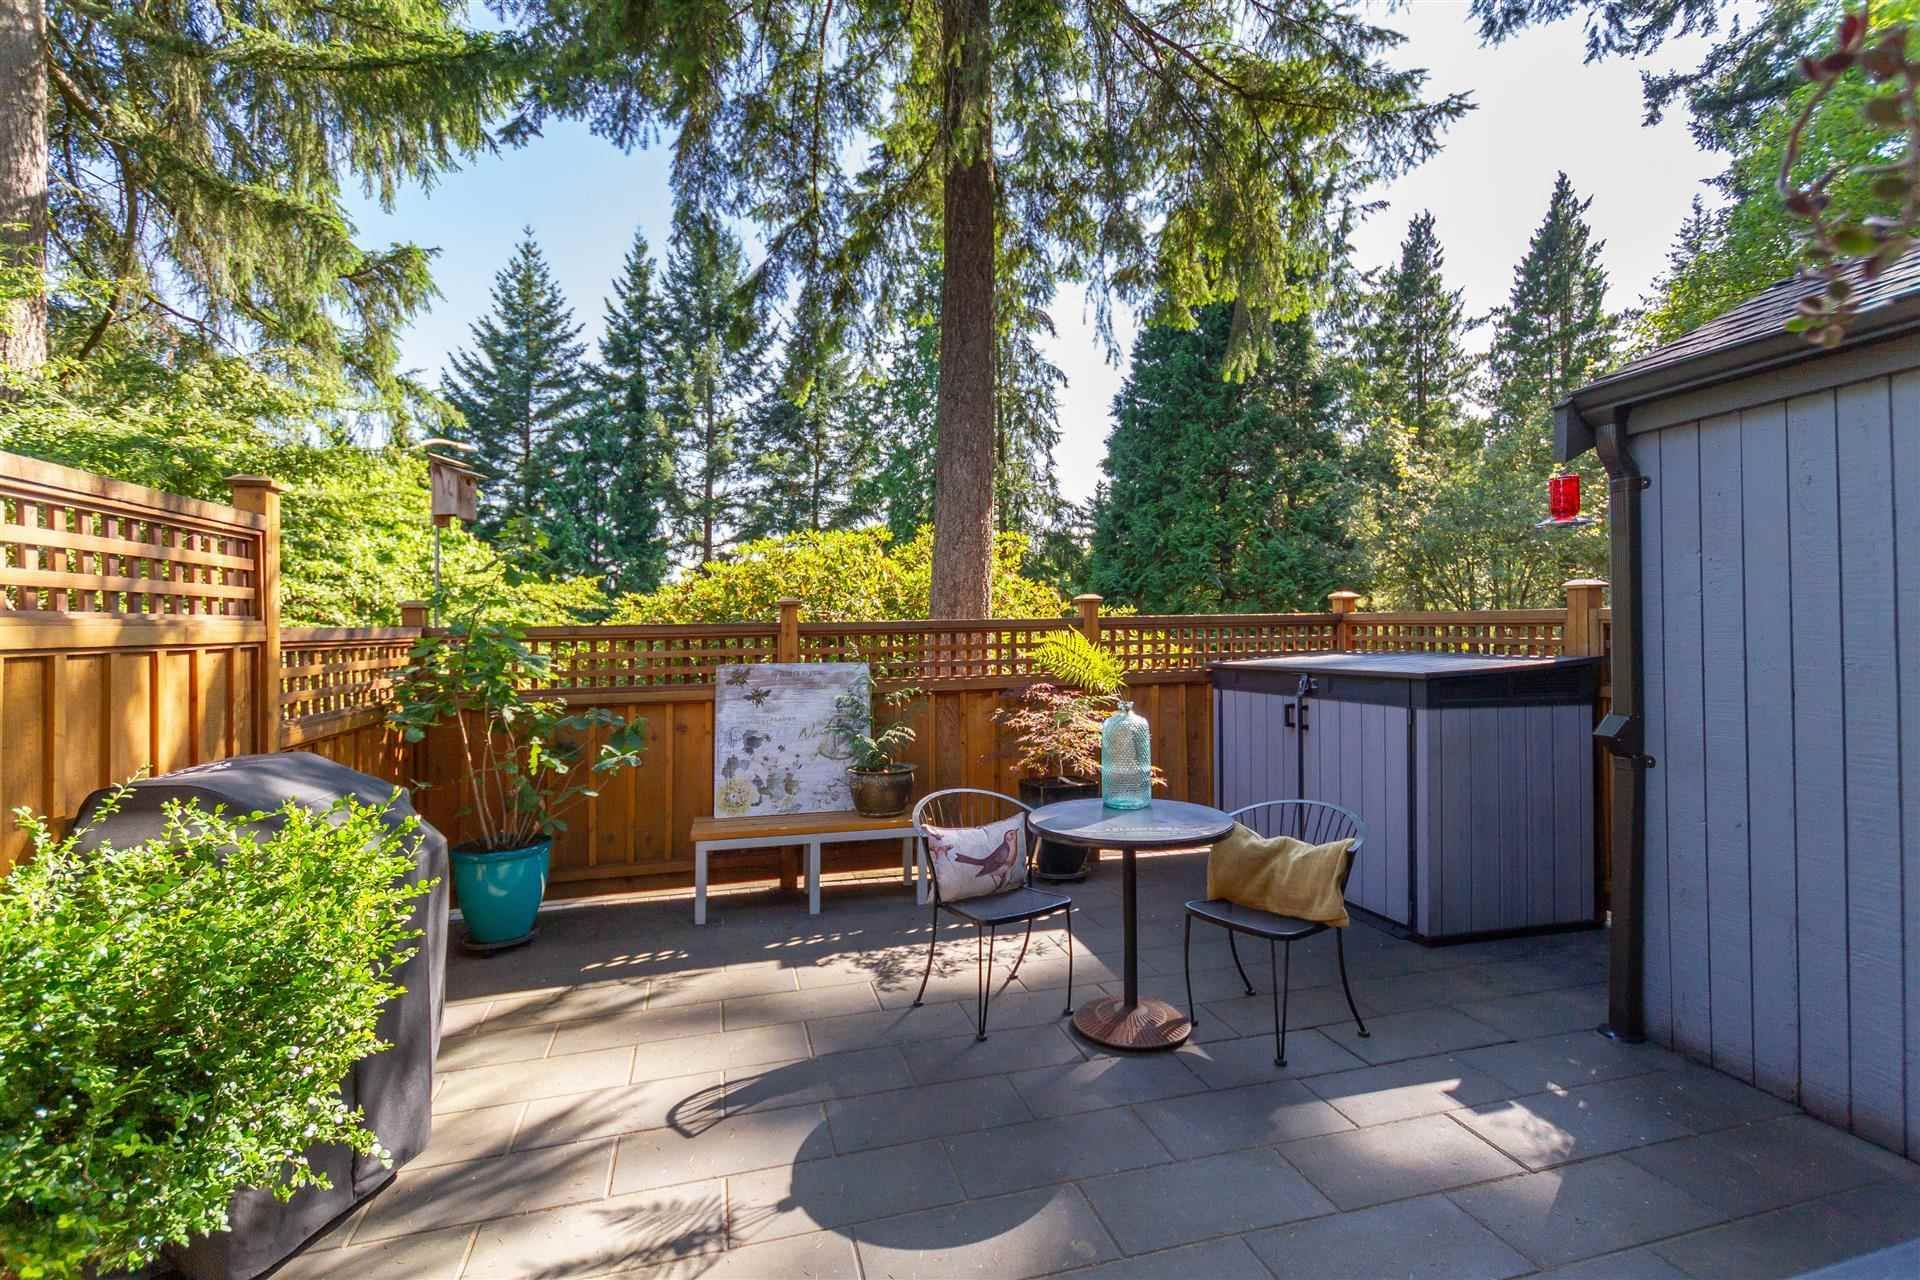 """Main Photo: 879 CUNNINGHAM Lane in Port Moody: North Shore Pt Moody Townhouse for sale in """"Woodside Village"""" : MLS®# R2604426"""